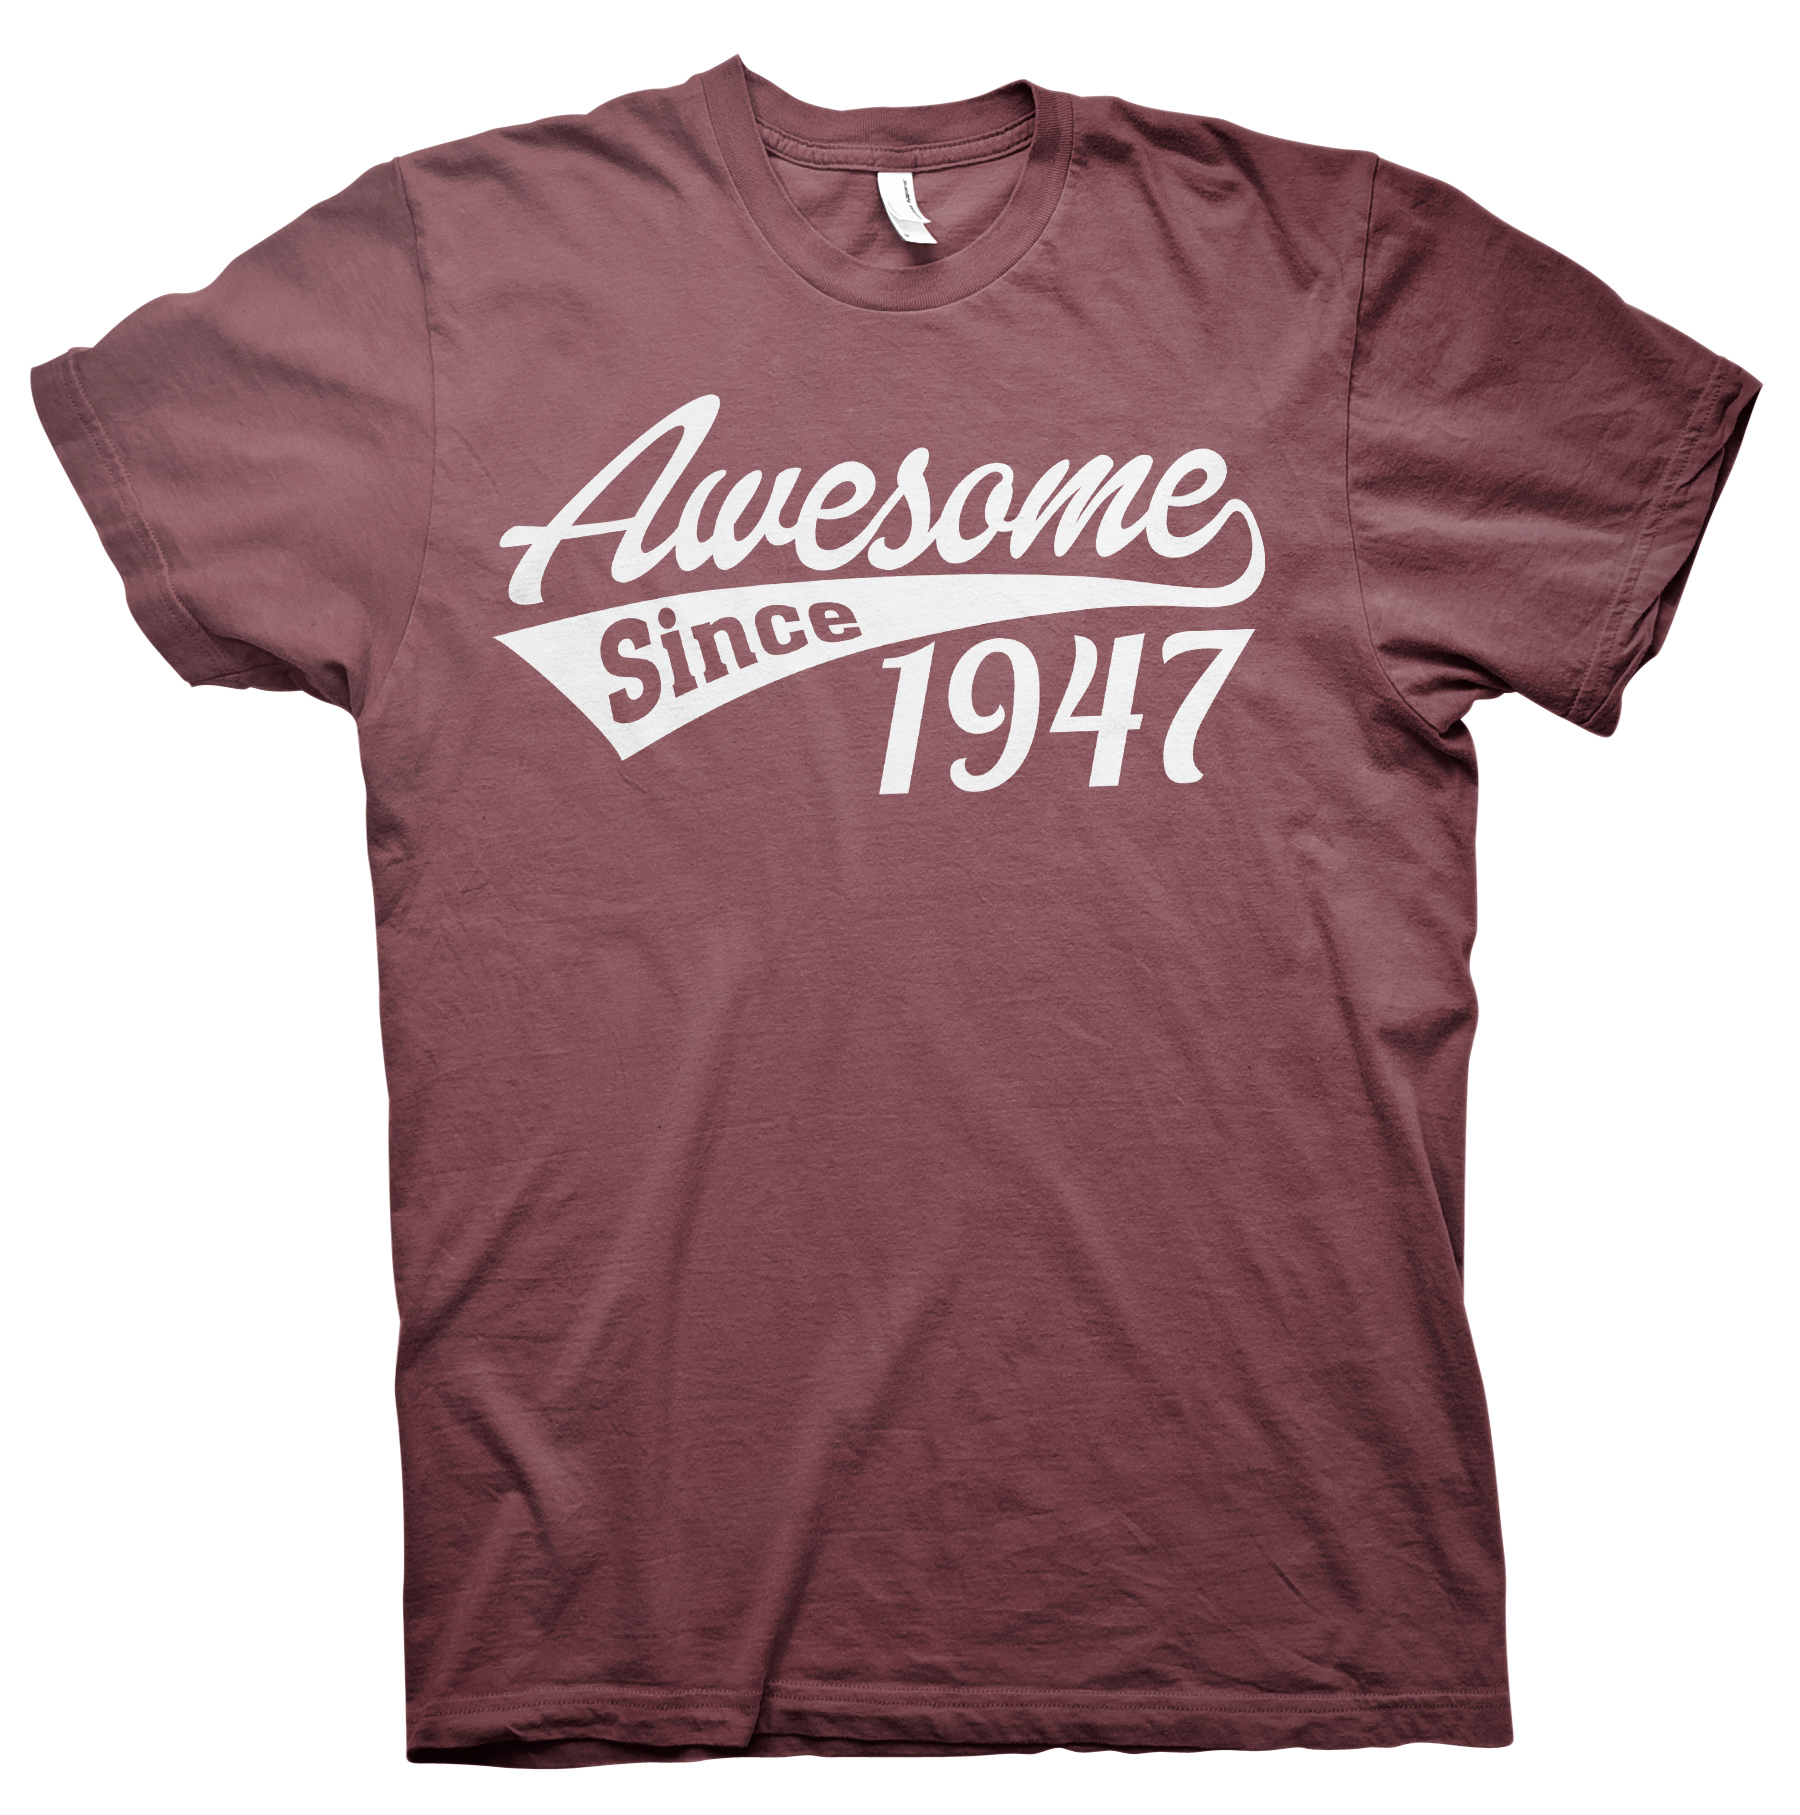 Awesome Since 1947 - 70th Birthday Gift T-shirt - Maroon